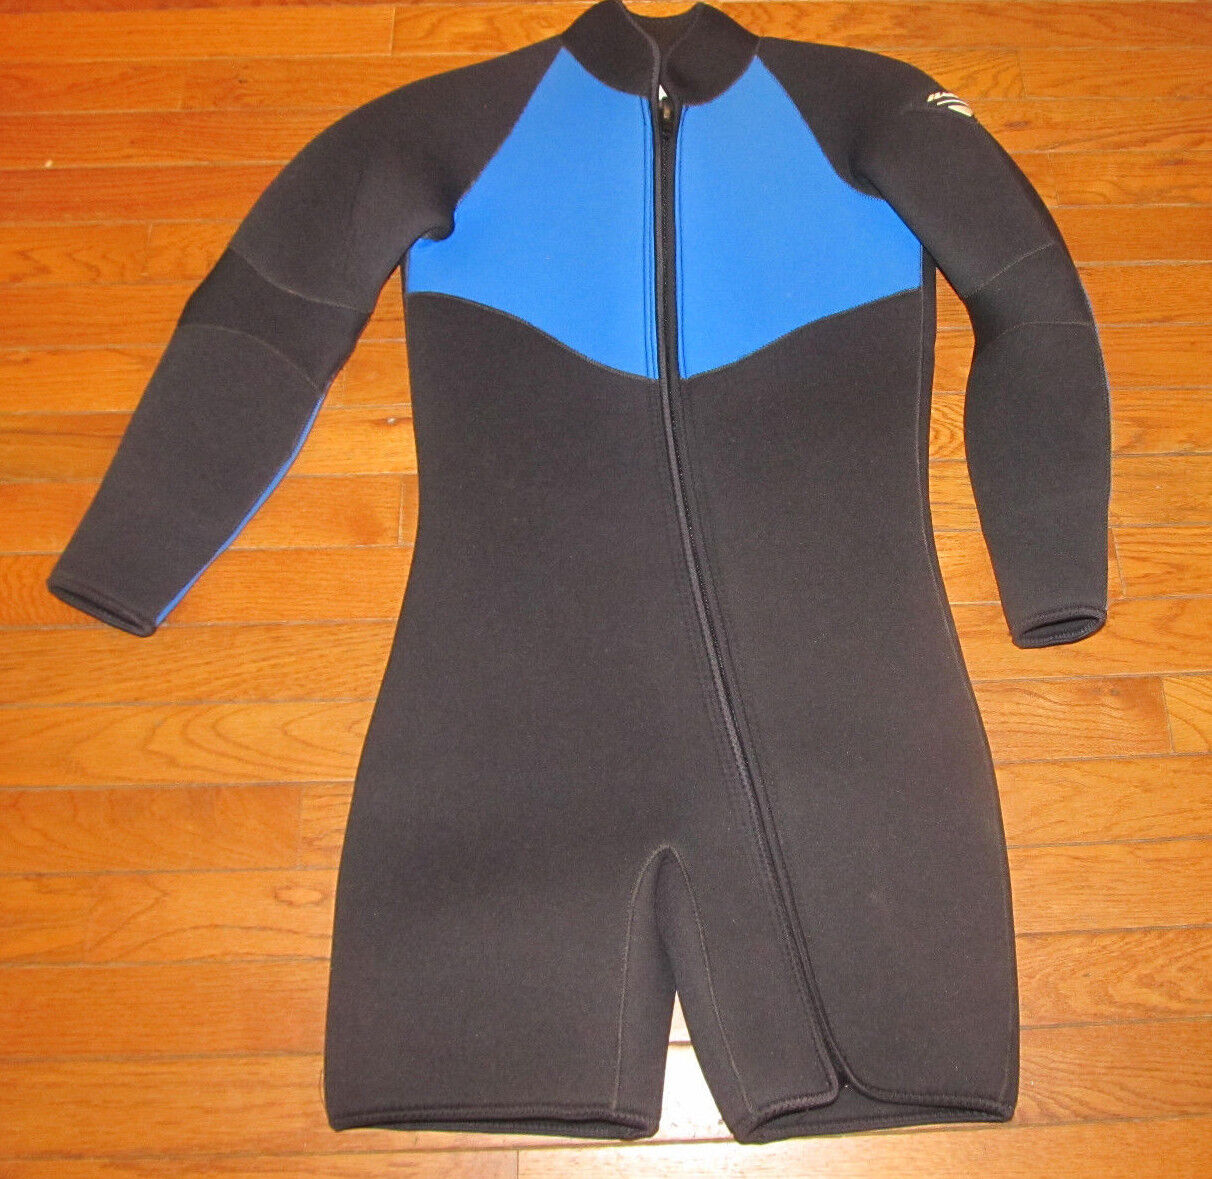 Seaquest Sea Quest Wetsuit Wet Suit Size S P S Small Thermal Predection